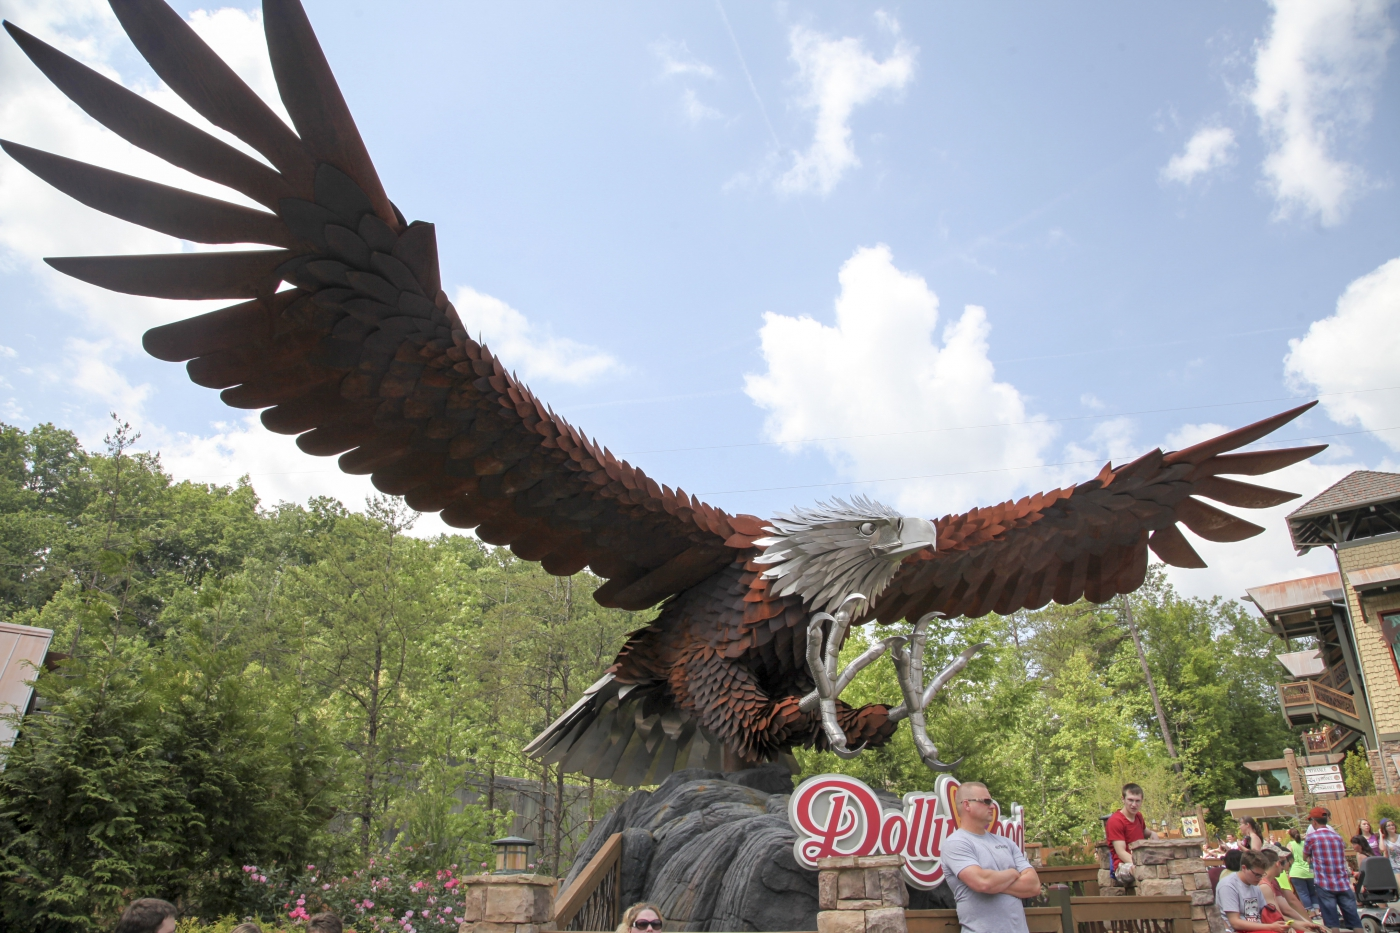 Wild Eagle Roller Coaster at Dollywood.